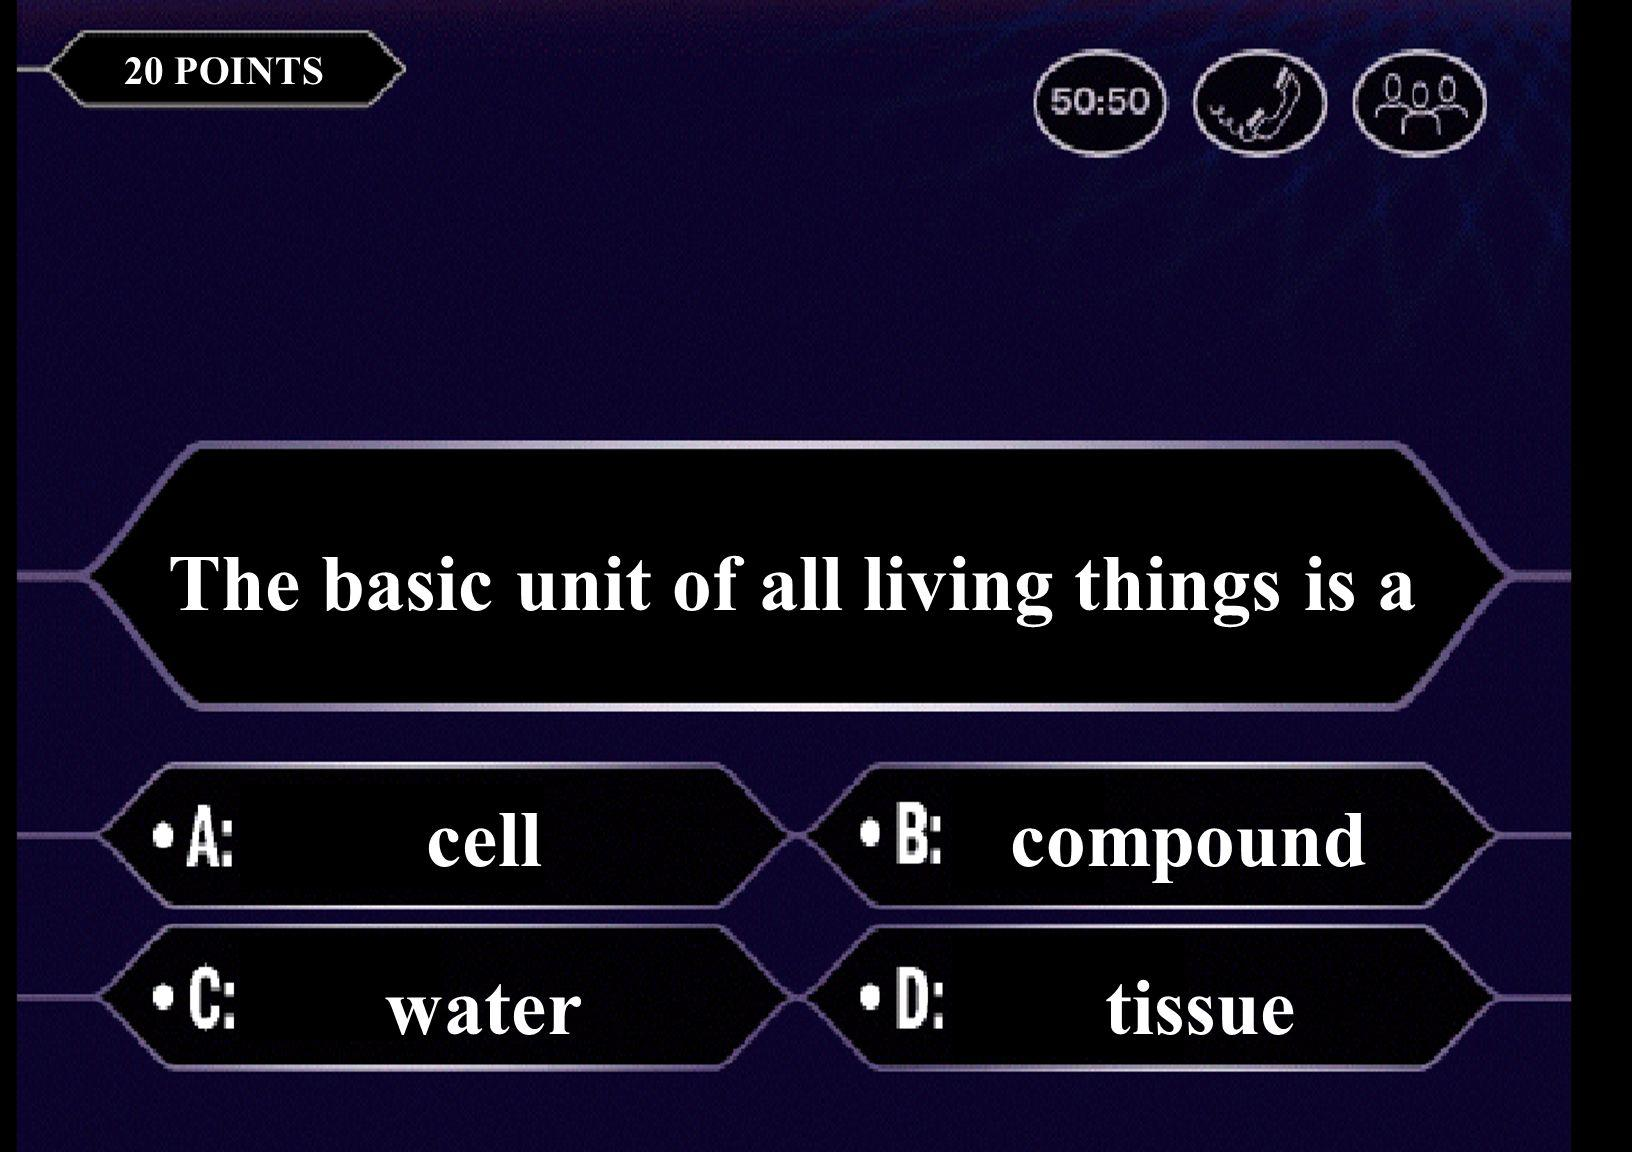 The basic unit of life is a(n) cell airtissue 20 POINTS The basic unit of all living things is a cellcompound watertissue